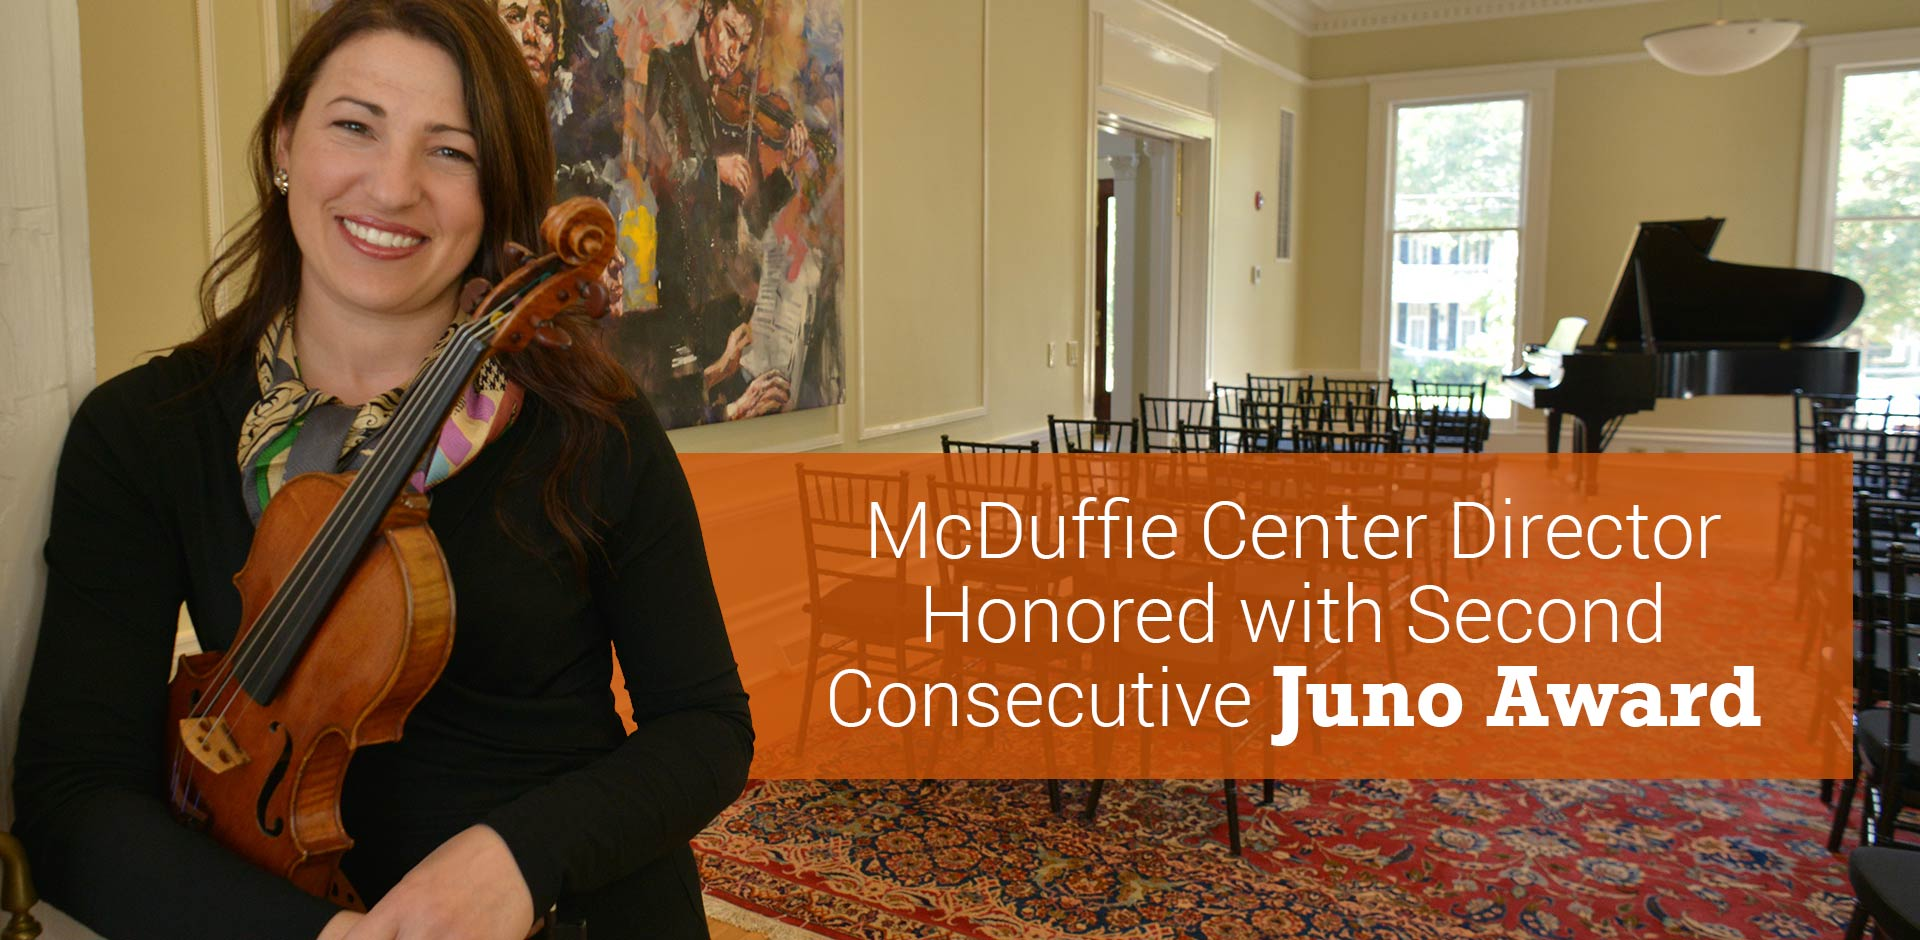 McDuffie Center Director Honored with Second Consecutive Juno Award